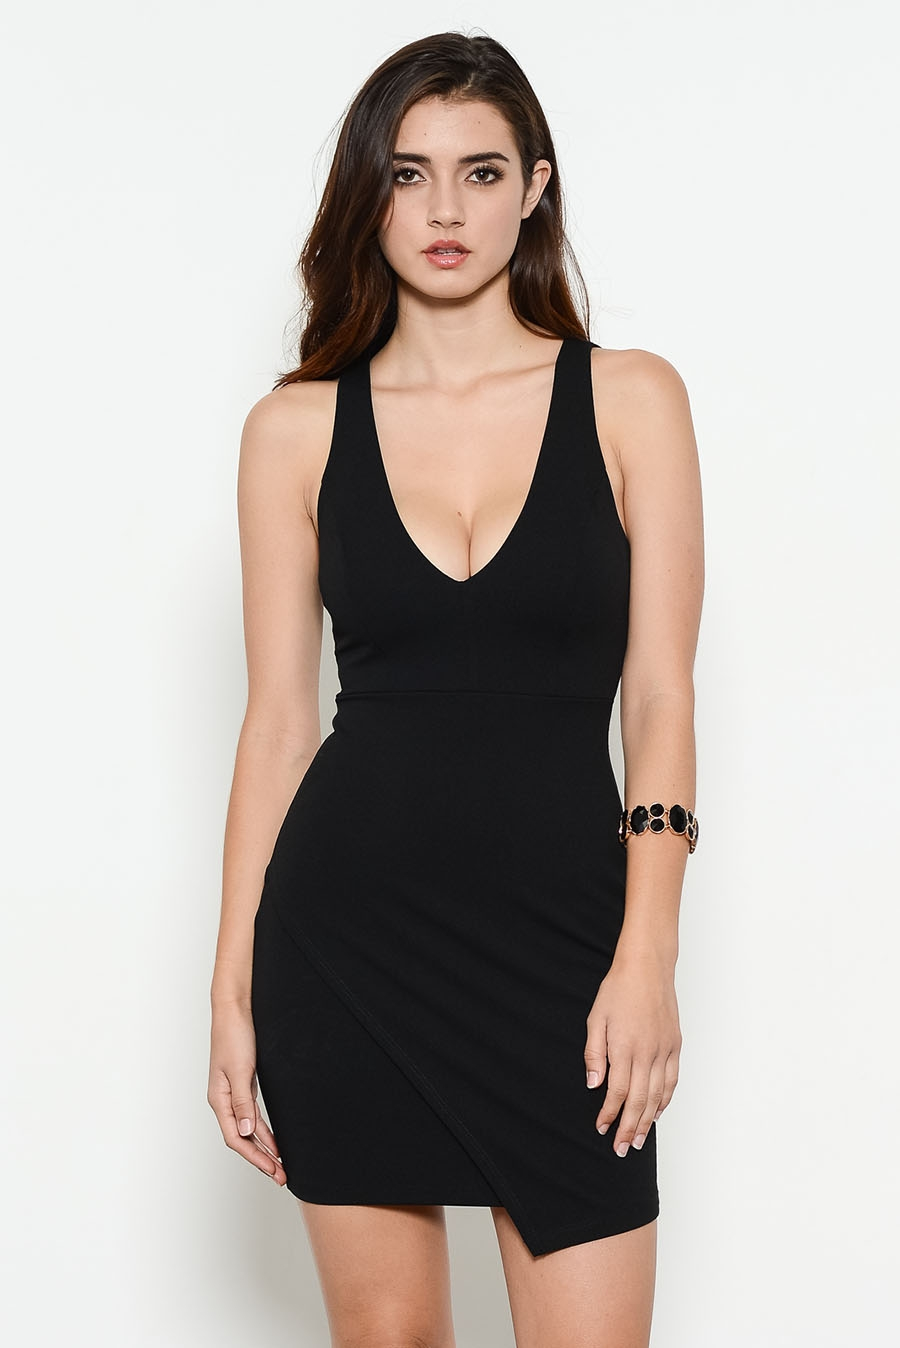 DEEP NECK STRAPPY BACK DRESS - orangeshine.com